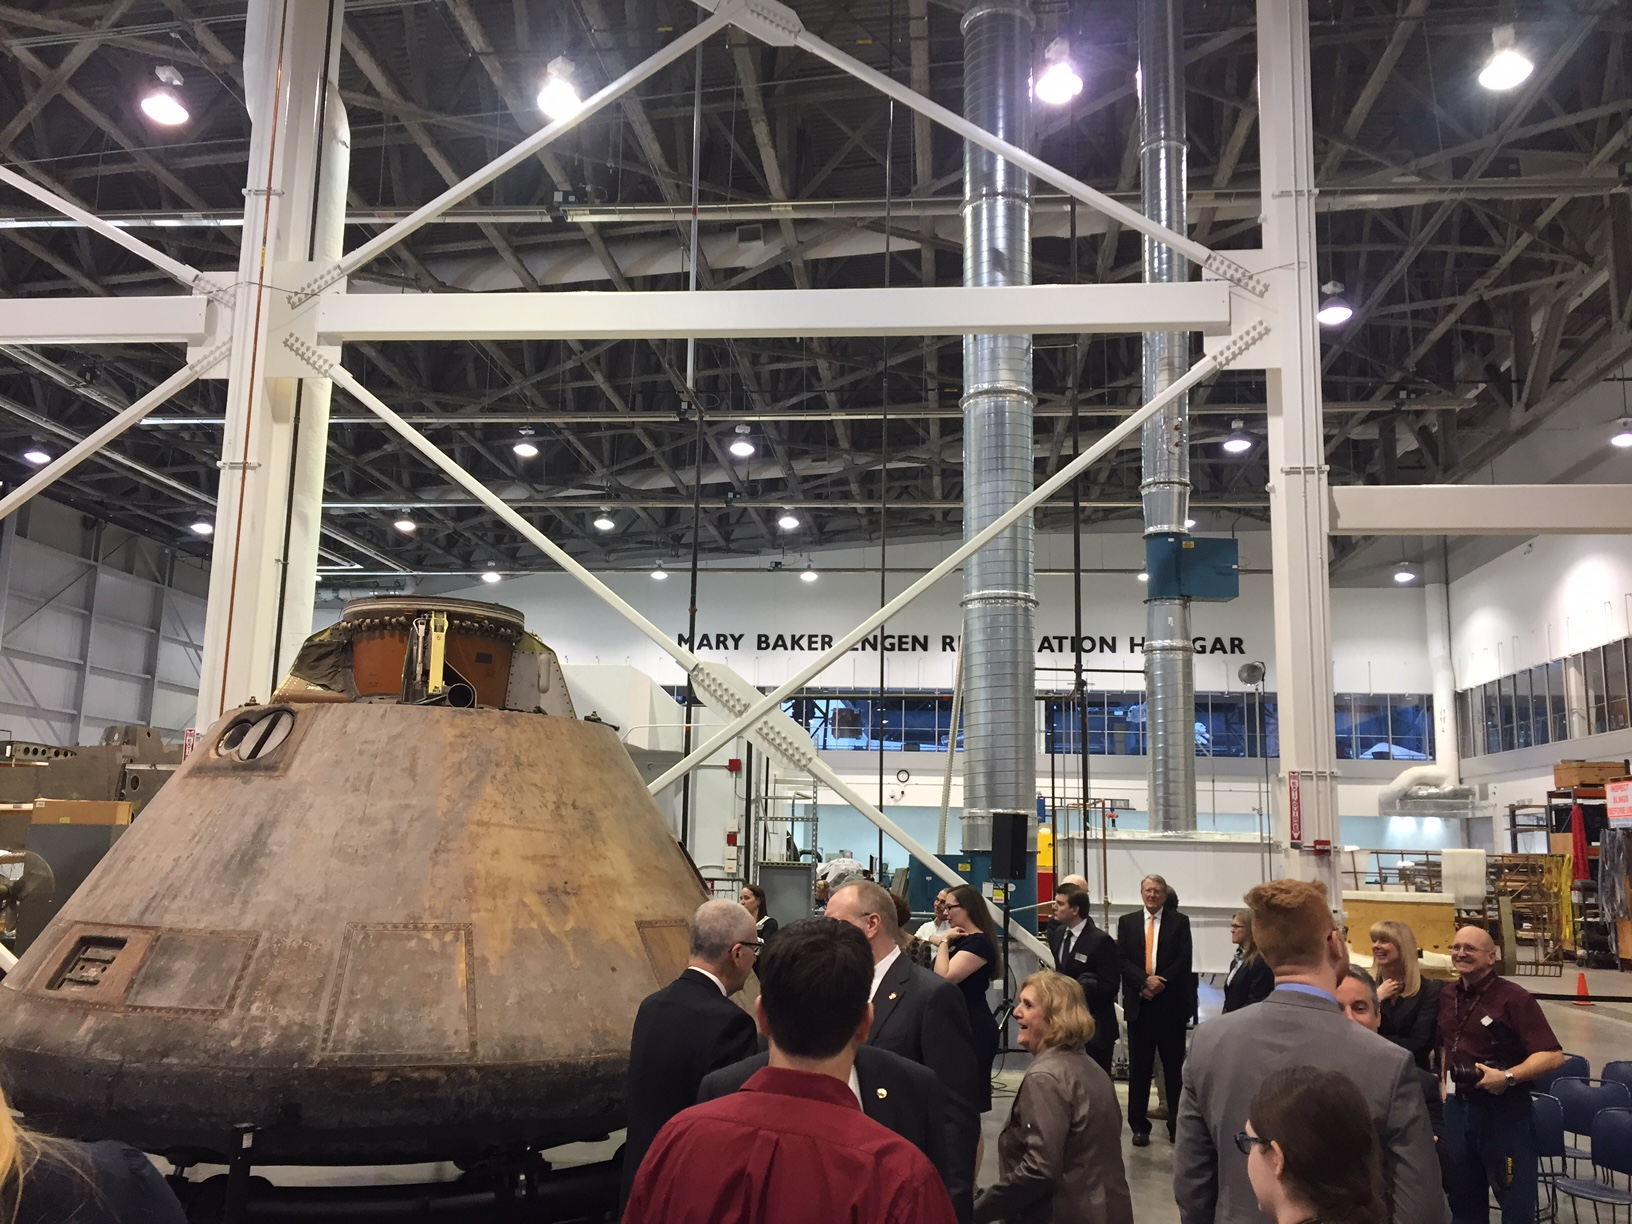 The Apollo 11 command module, inside the restoration hangar at the Air and Space Museum's Udvar-Hazy Center. (WTOP/John Aaron)